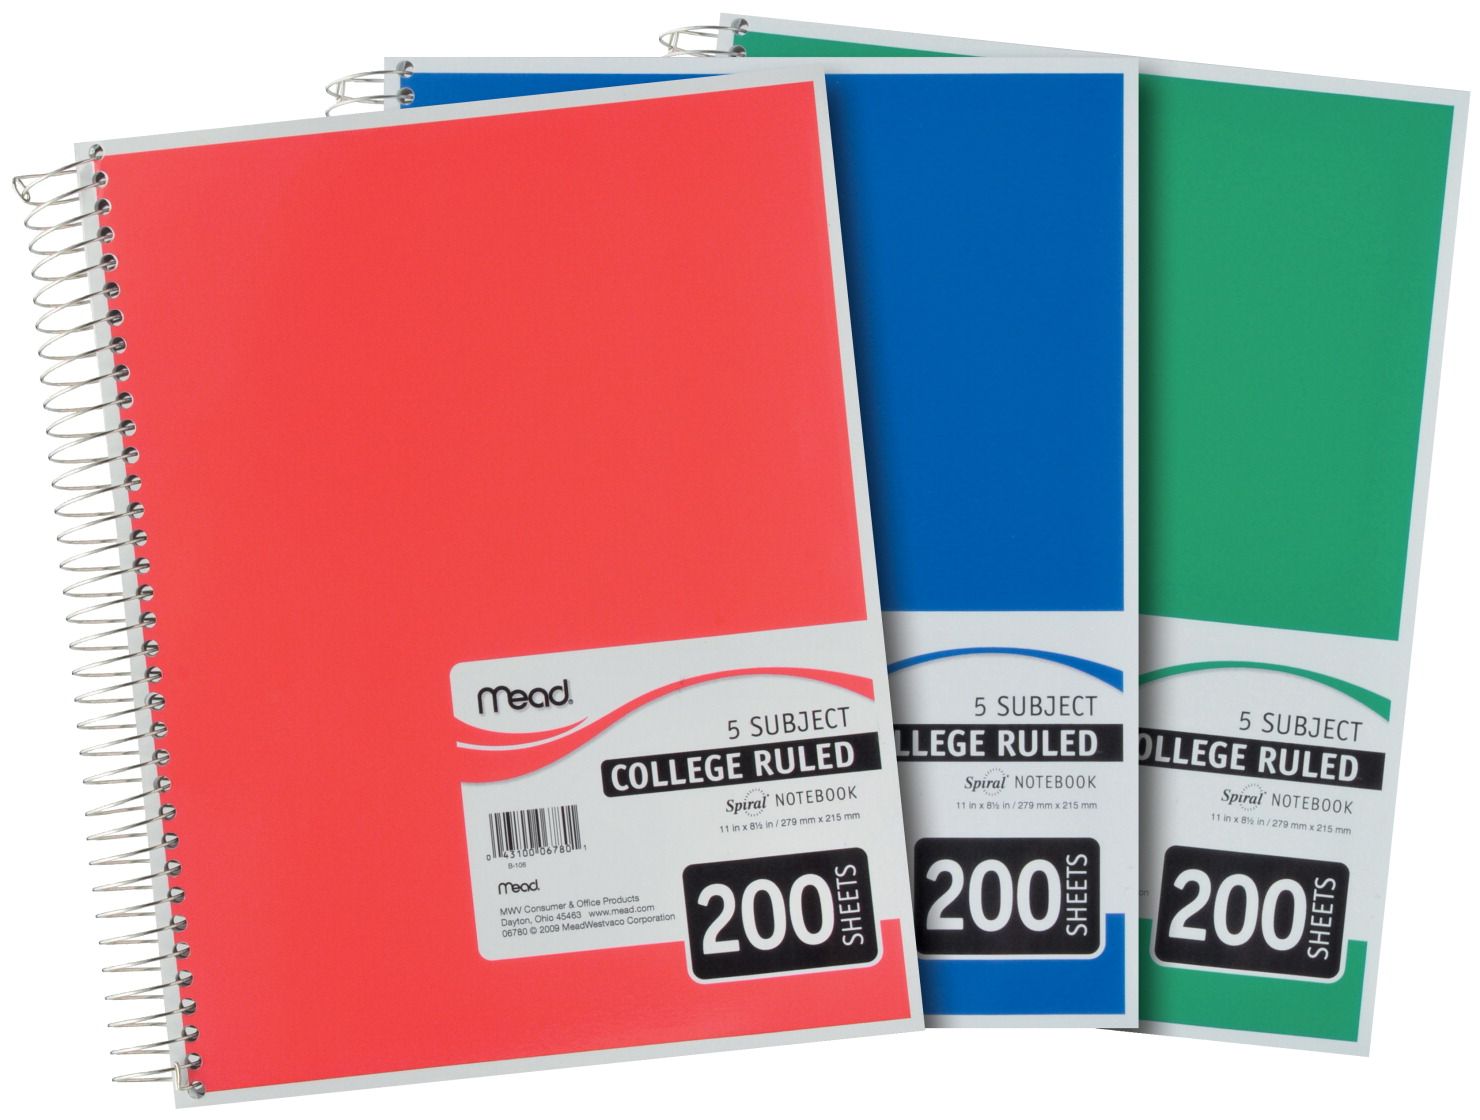 Details about Mead 5 Subject Wirebound College Ruled Notebook, 200 Sheets,  8-1/2 x 11 Inches,